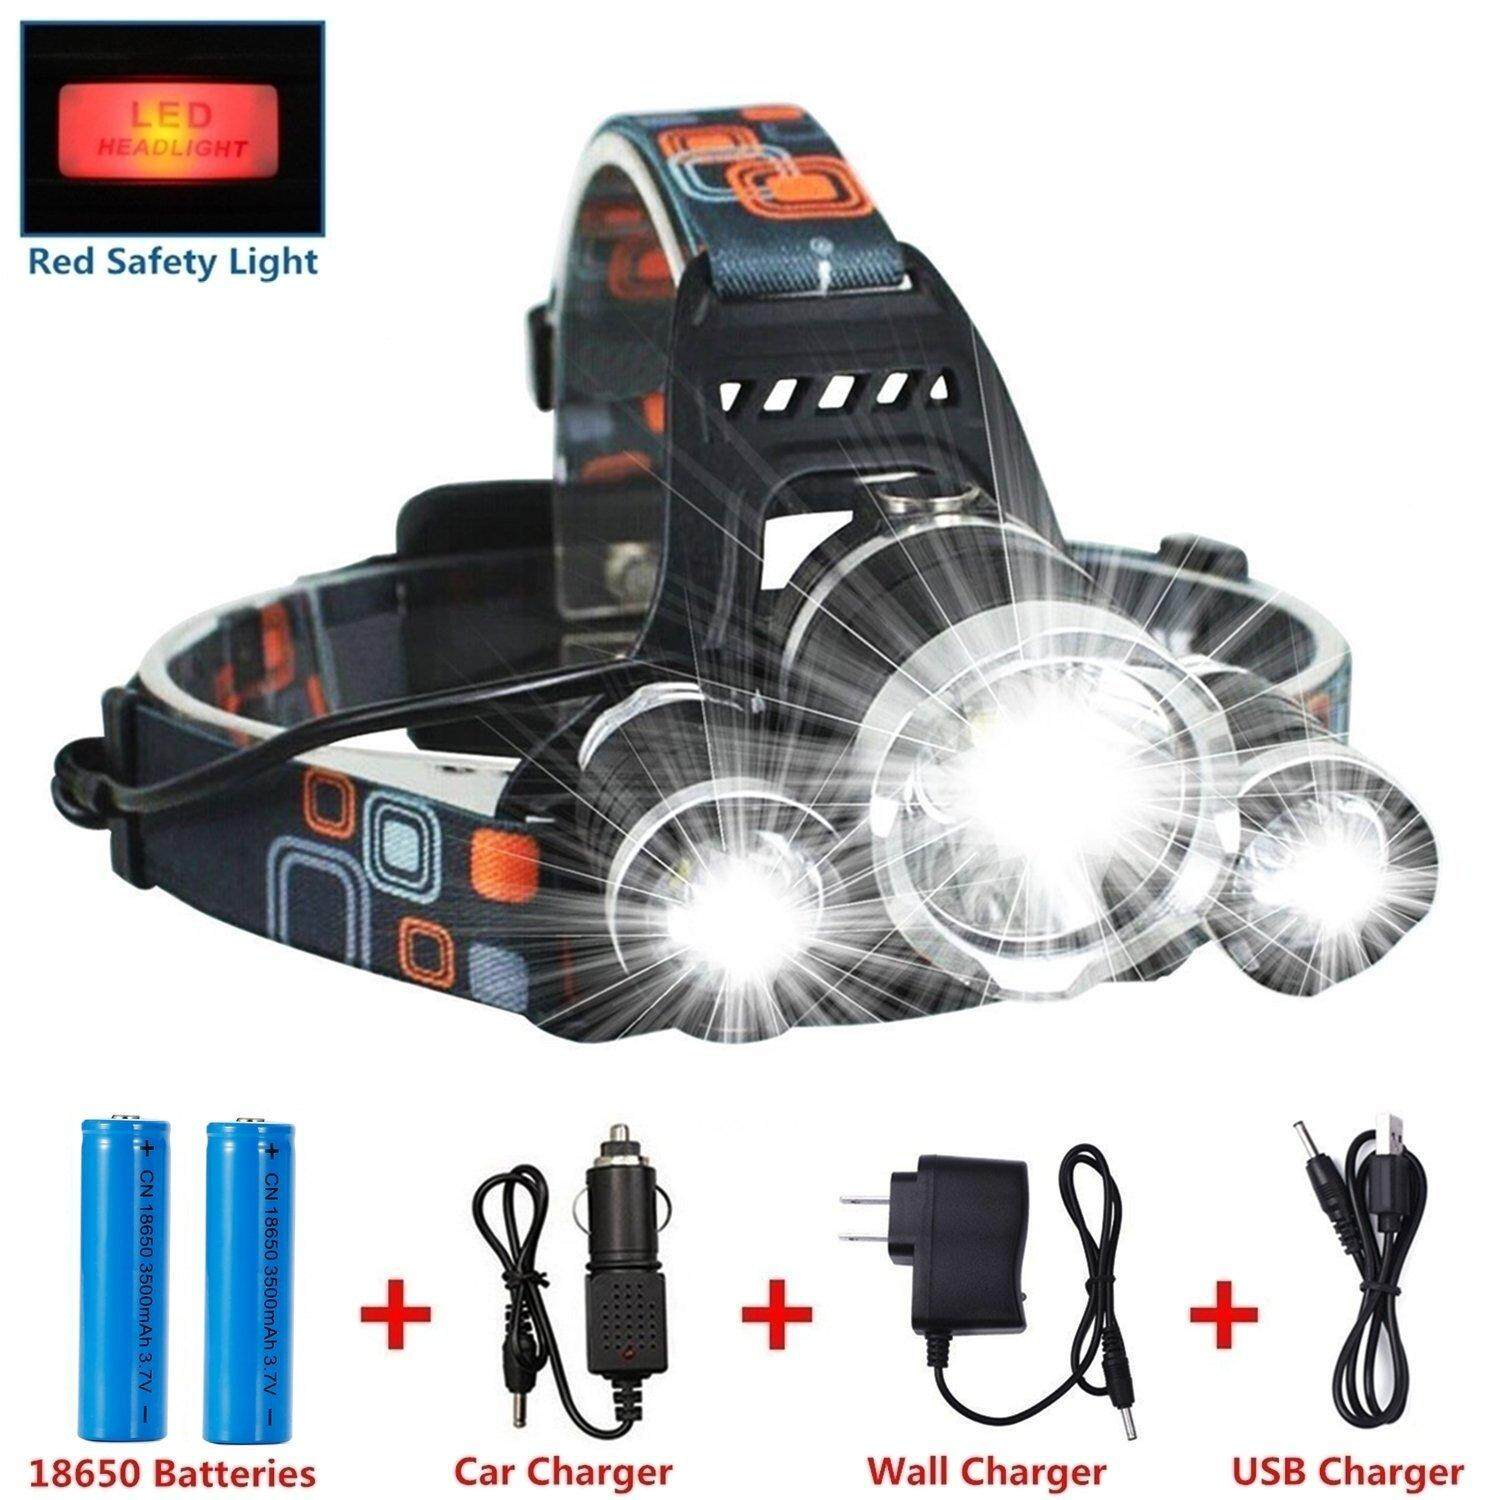 《free Shipping》led Headlamp Flashlight Kit, Annan 8000-Lumen Extreme Bright Headlight With Red Safety Light, 4 Modes, Waterproof, Portable Light For Camping, Biking, 2 Rech 18650 Included By Shenzhen City Fanfanyun Intelligent Technology Co Ltd.